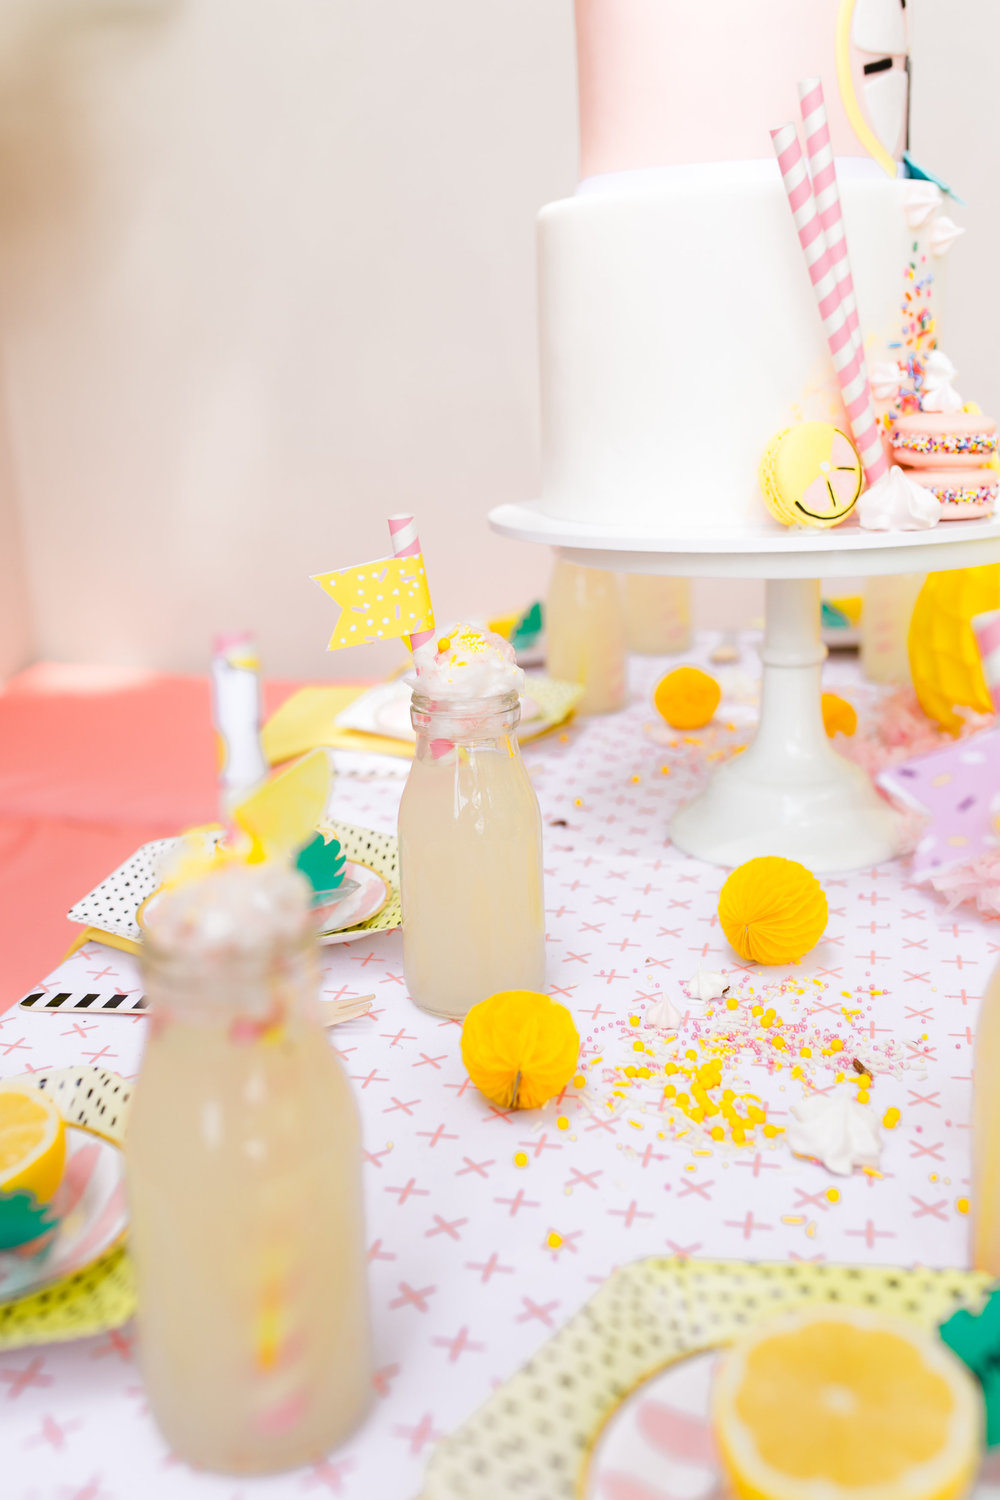 Lemonade kids birthday party - Tabletop Decor and Lemonade Glasses